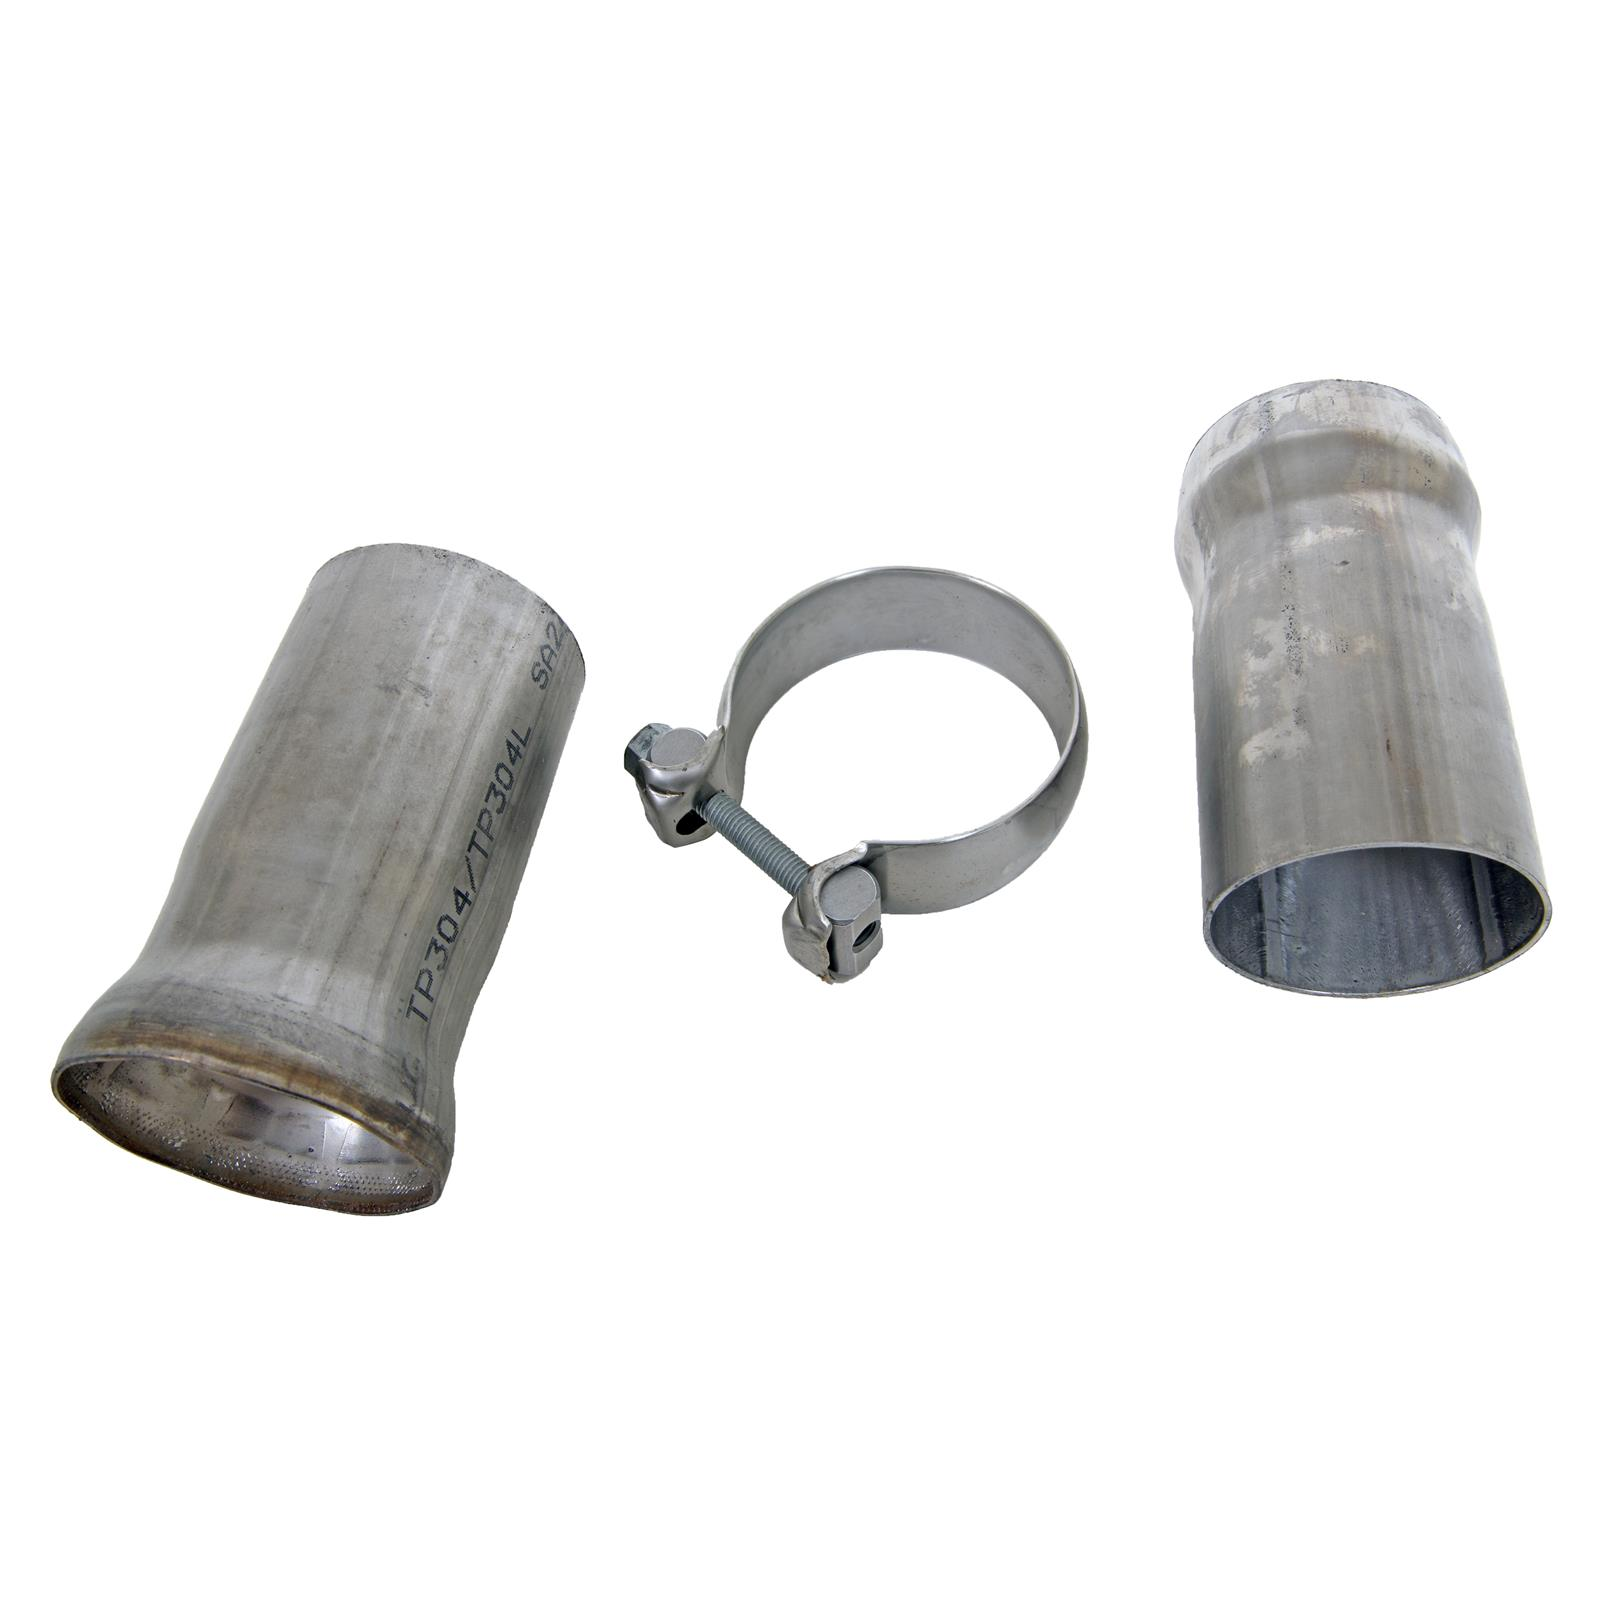 Summit exhaust ball flange stainless steel natural in